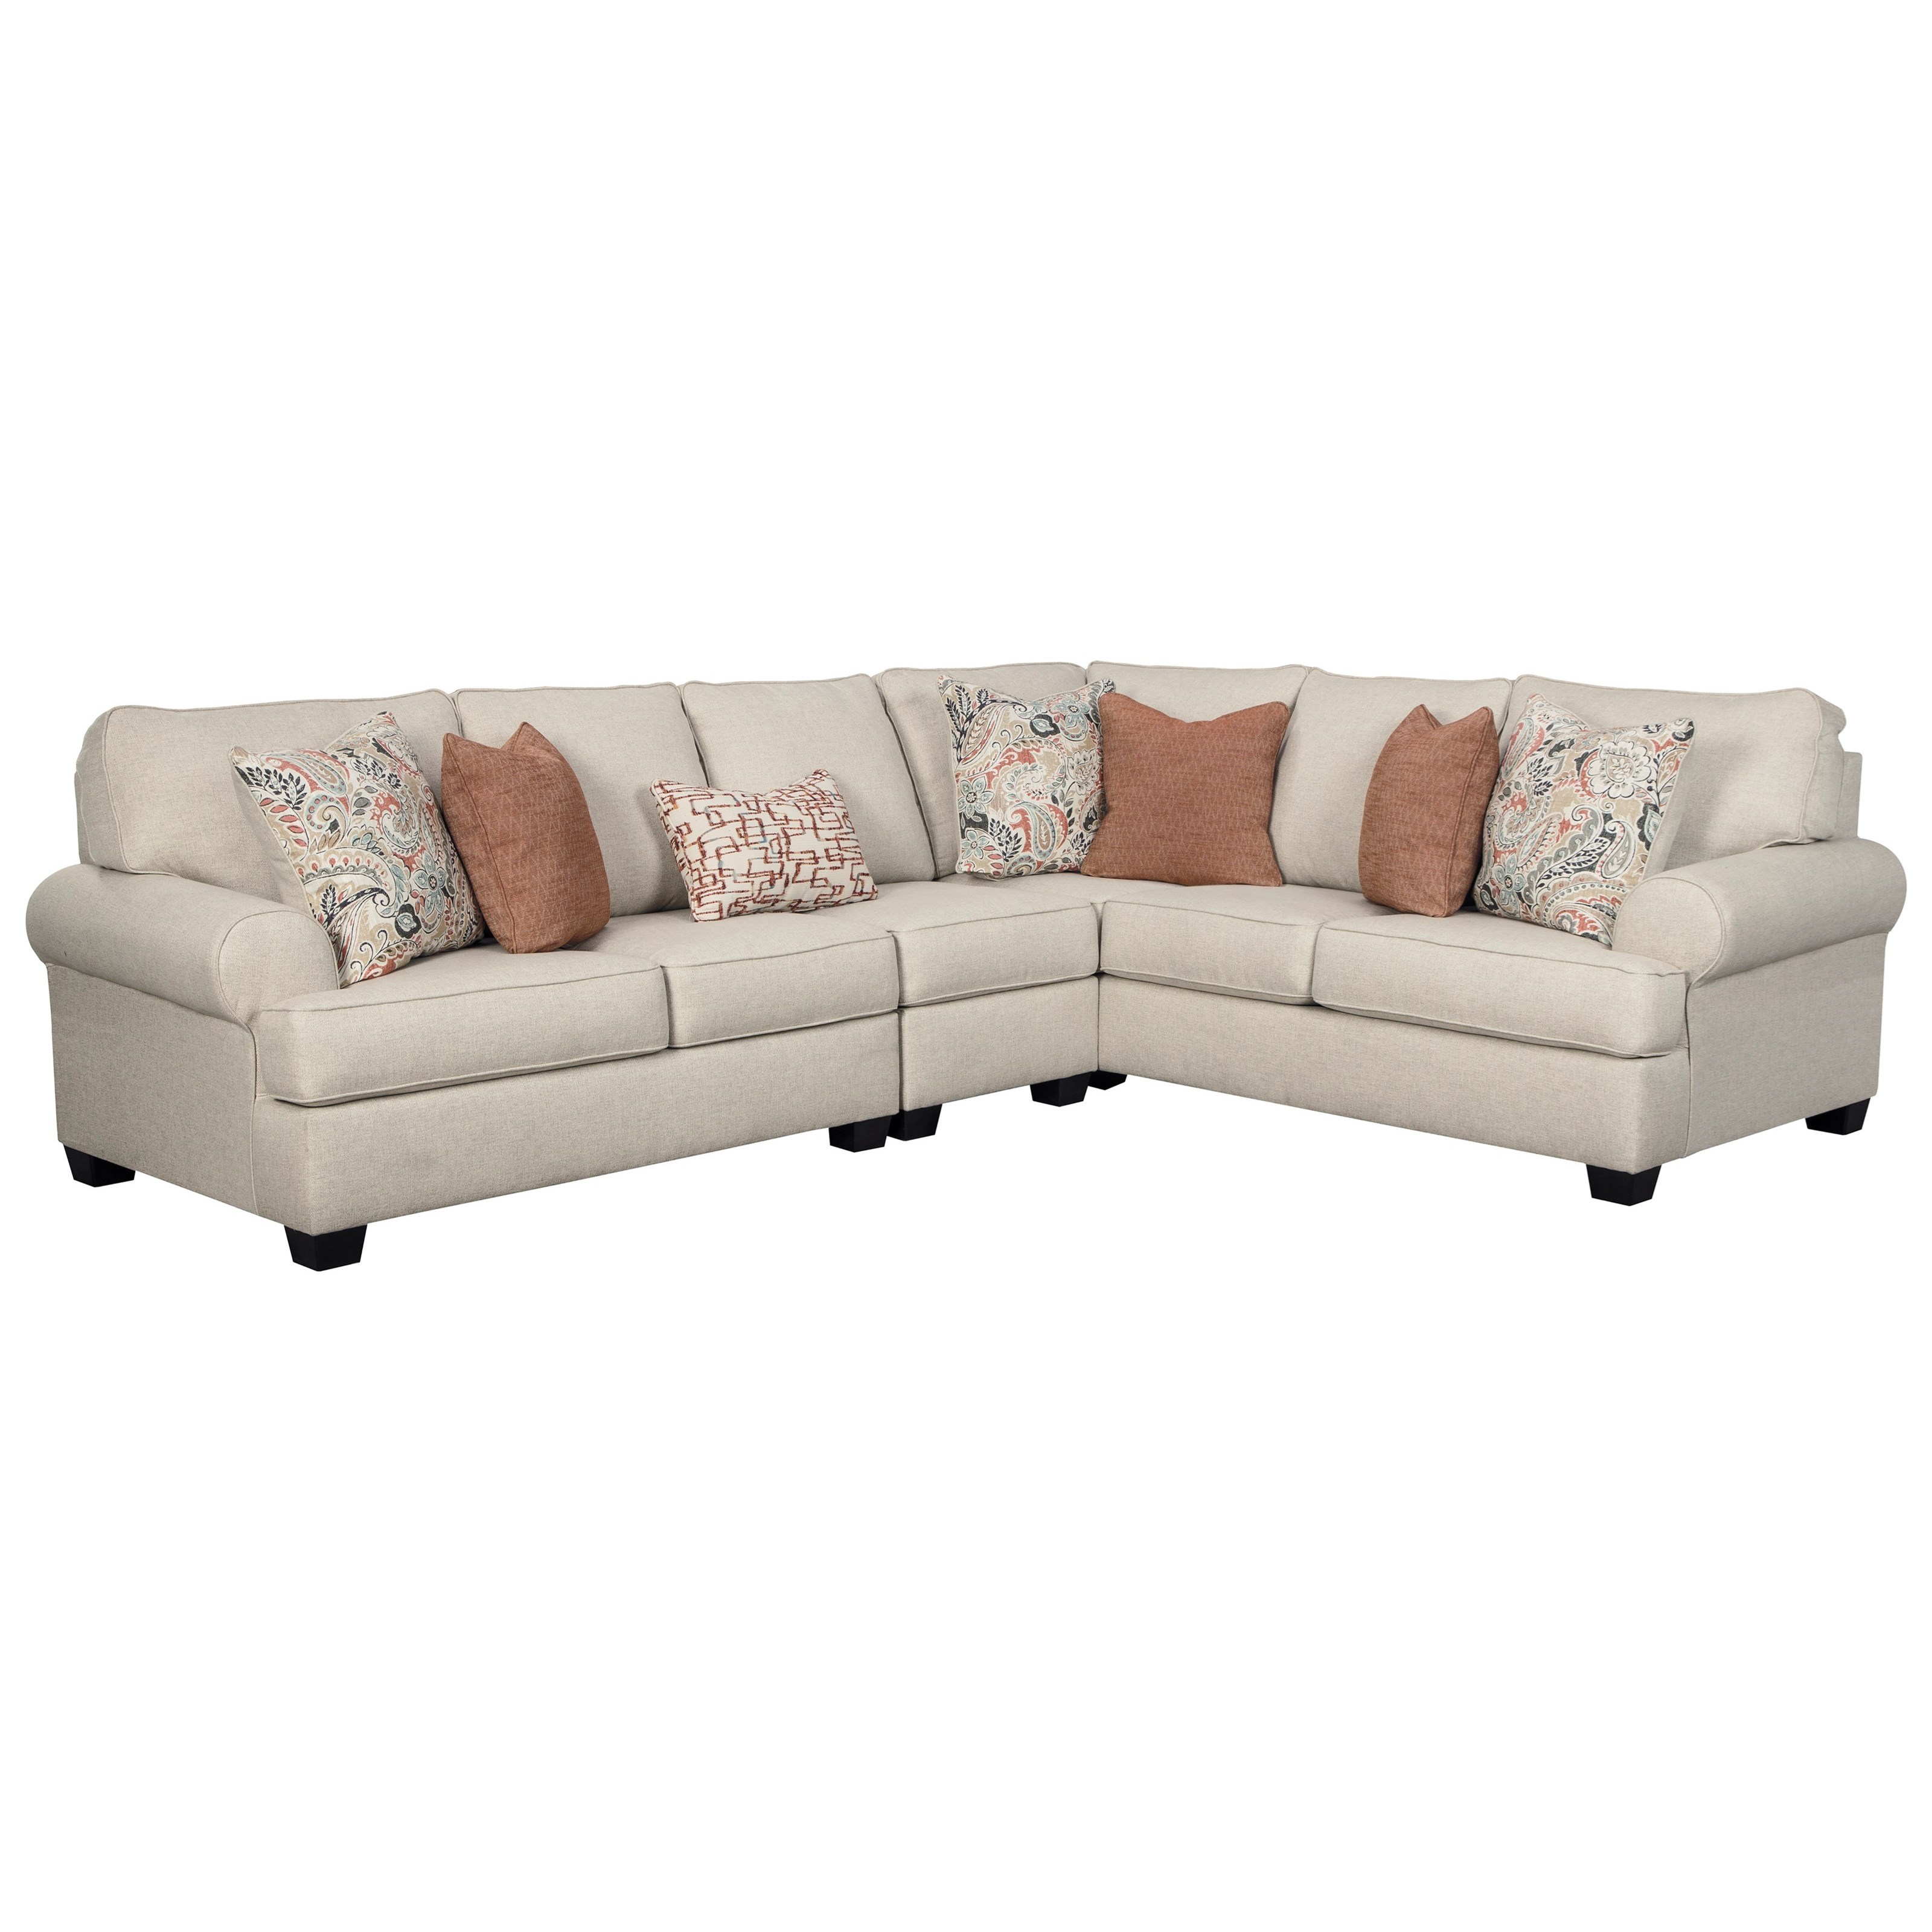 Amici 3-Piece Sectional by Signature Design by Ashley at Zak's Warehouse Clearance Center